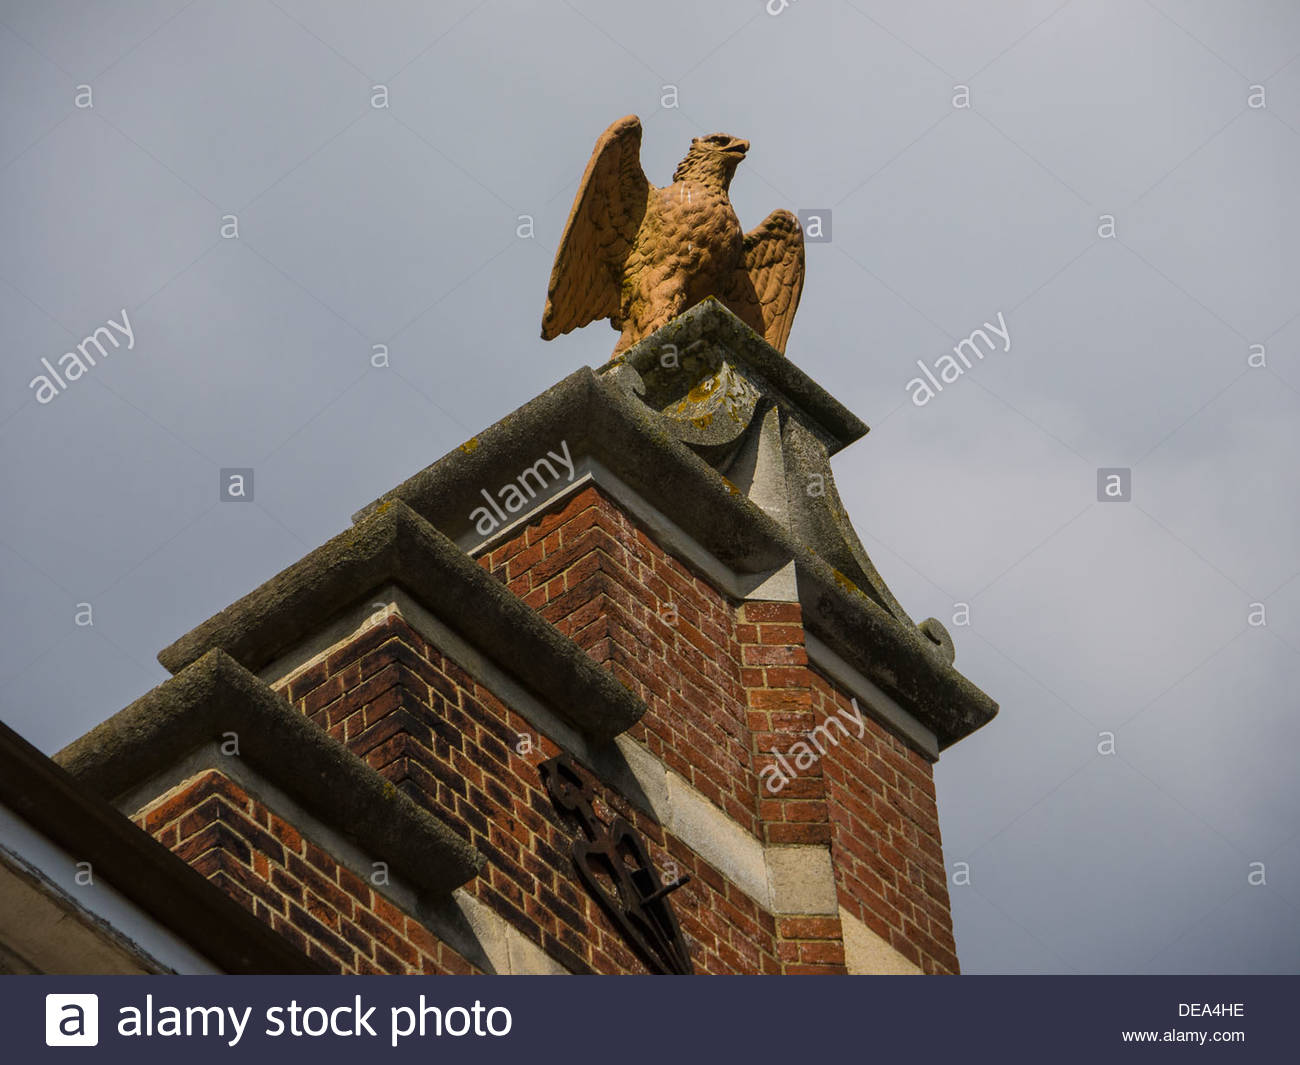 Eagle Statue Cld May and Wade Export Grocers Shipping Contractors Building Southampton England UK - Stock Image